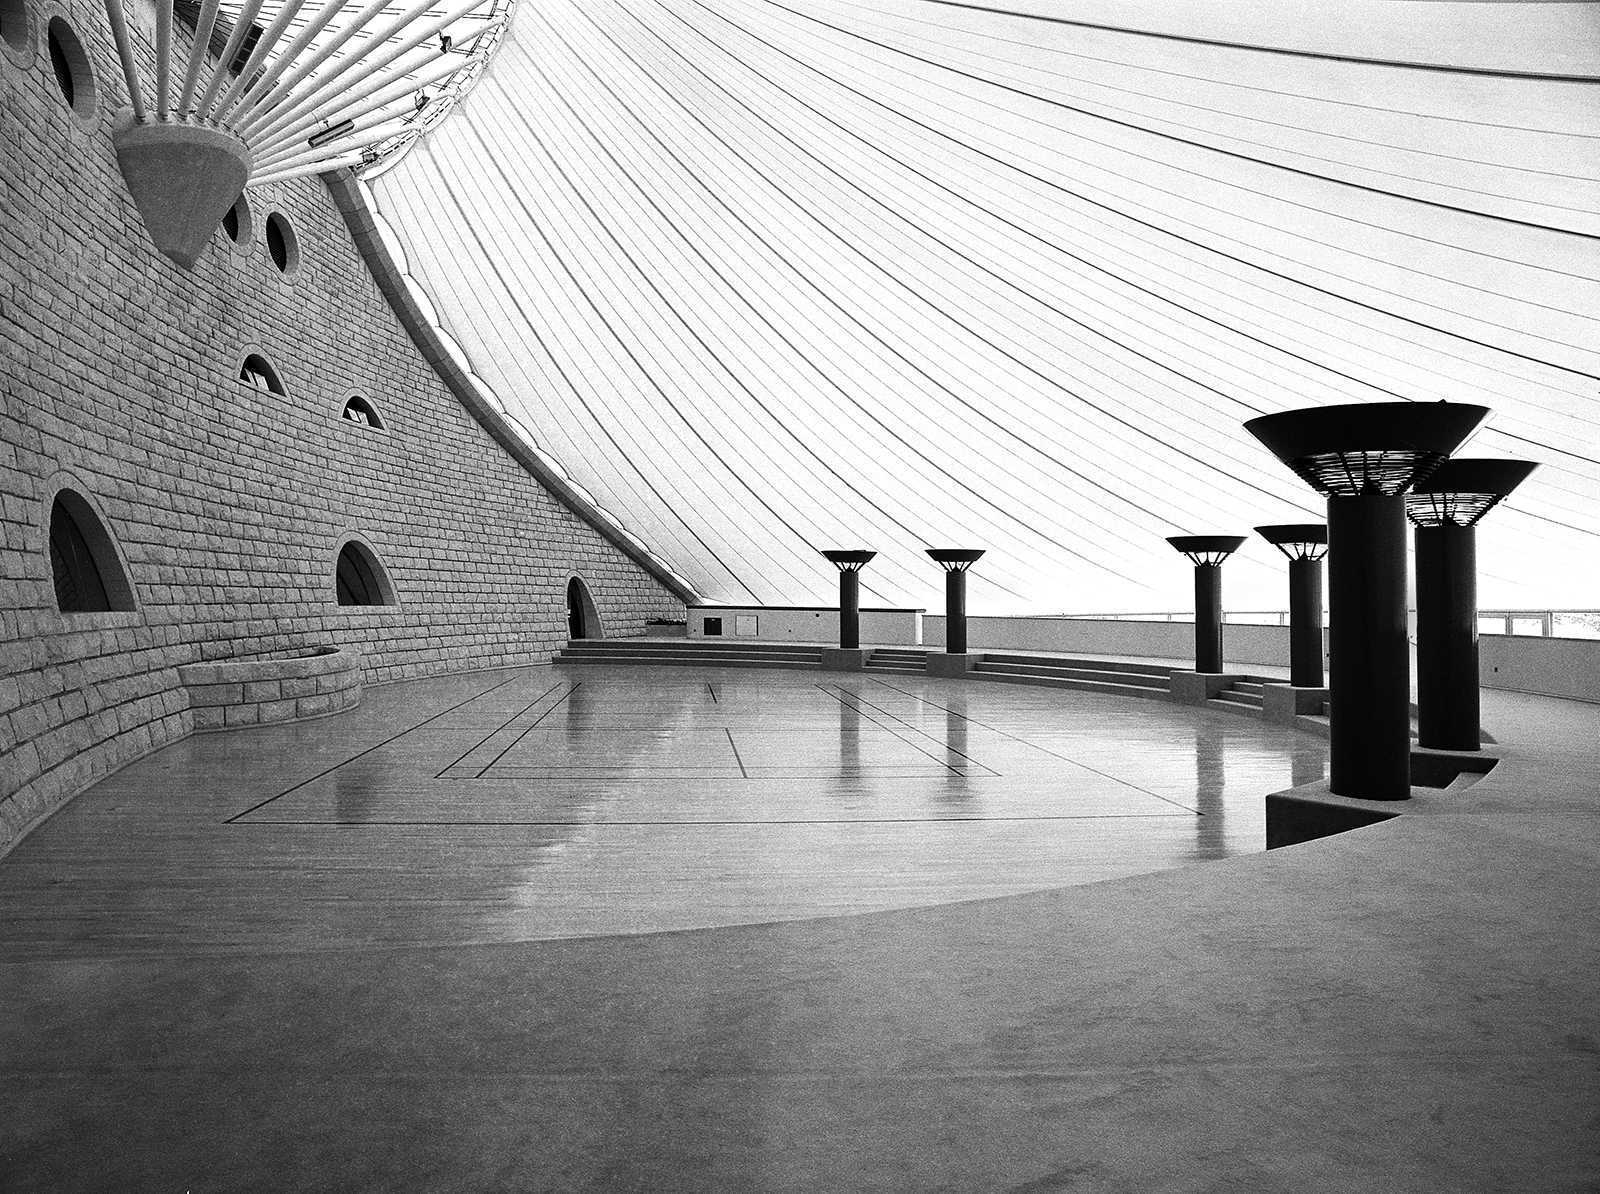 Tuwaiq Palace, Riyadh, Saudi Arabia, 1989. The light diffused by the tent softens the space to pull the viewer in.